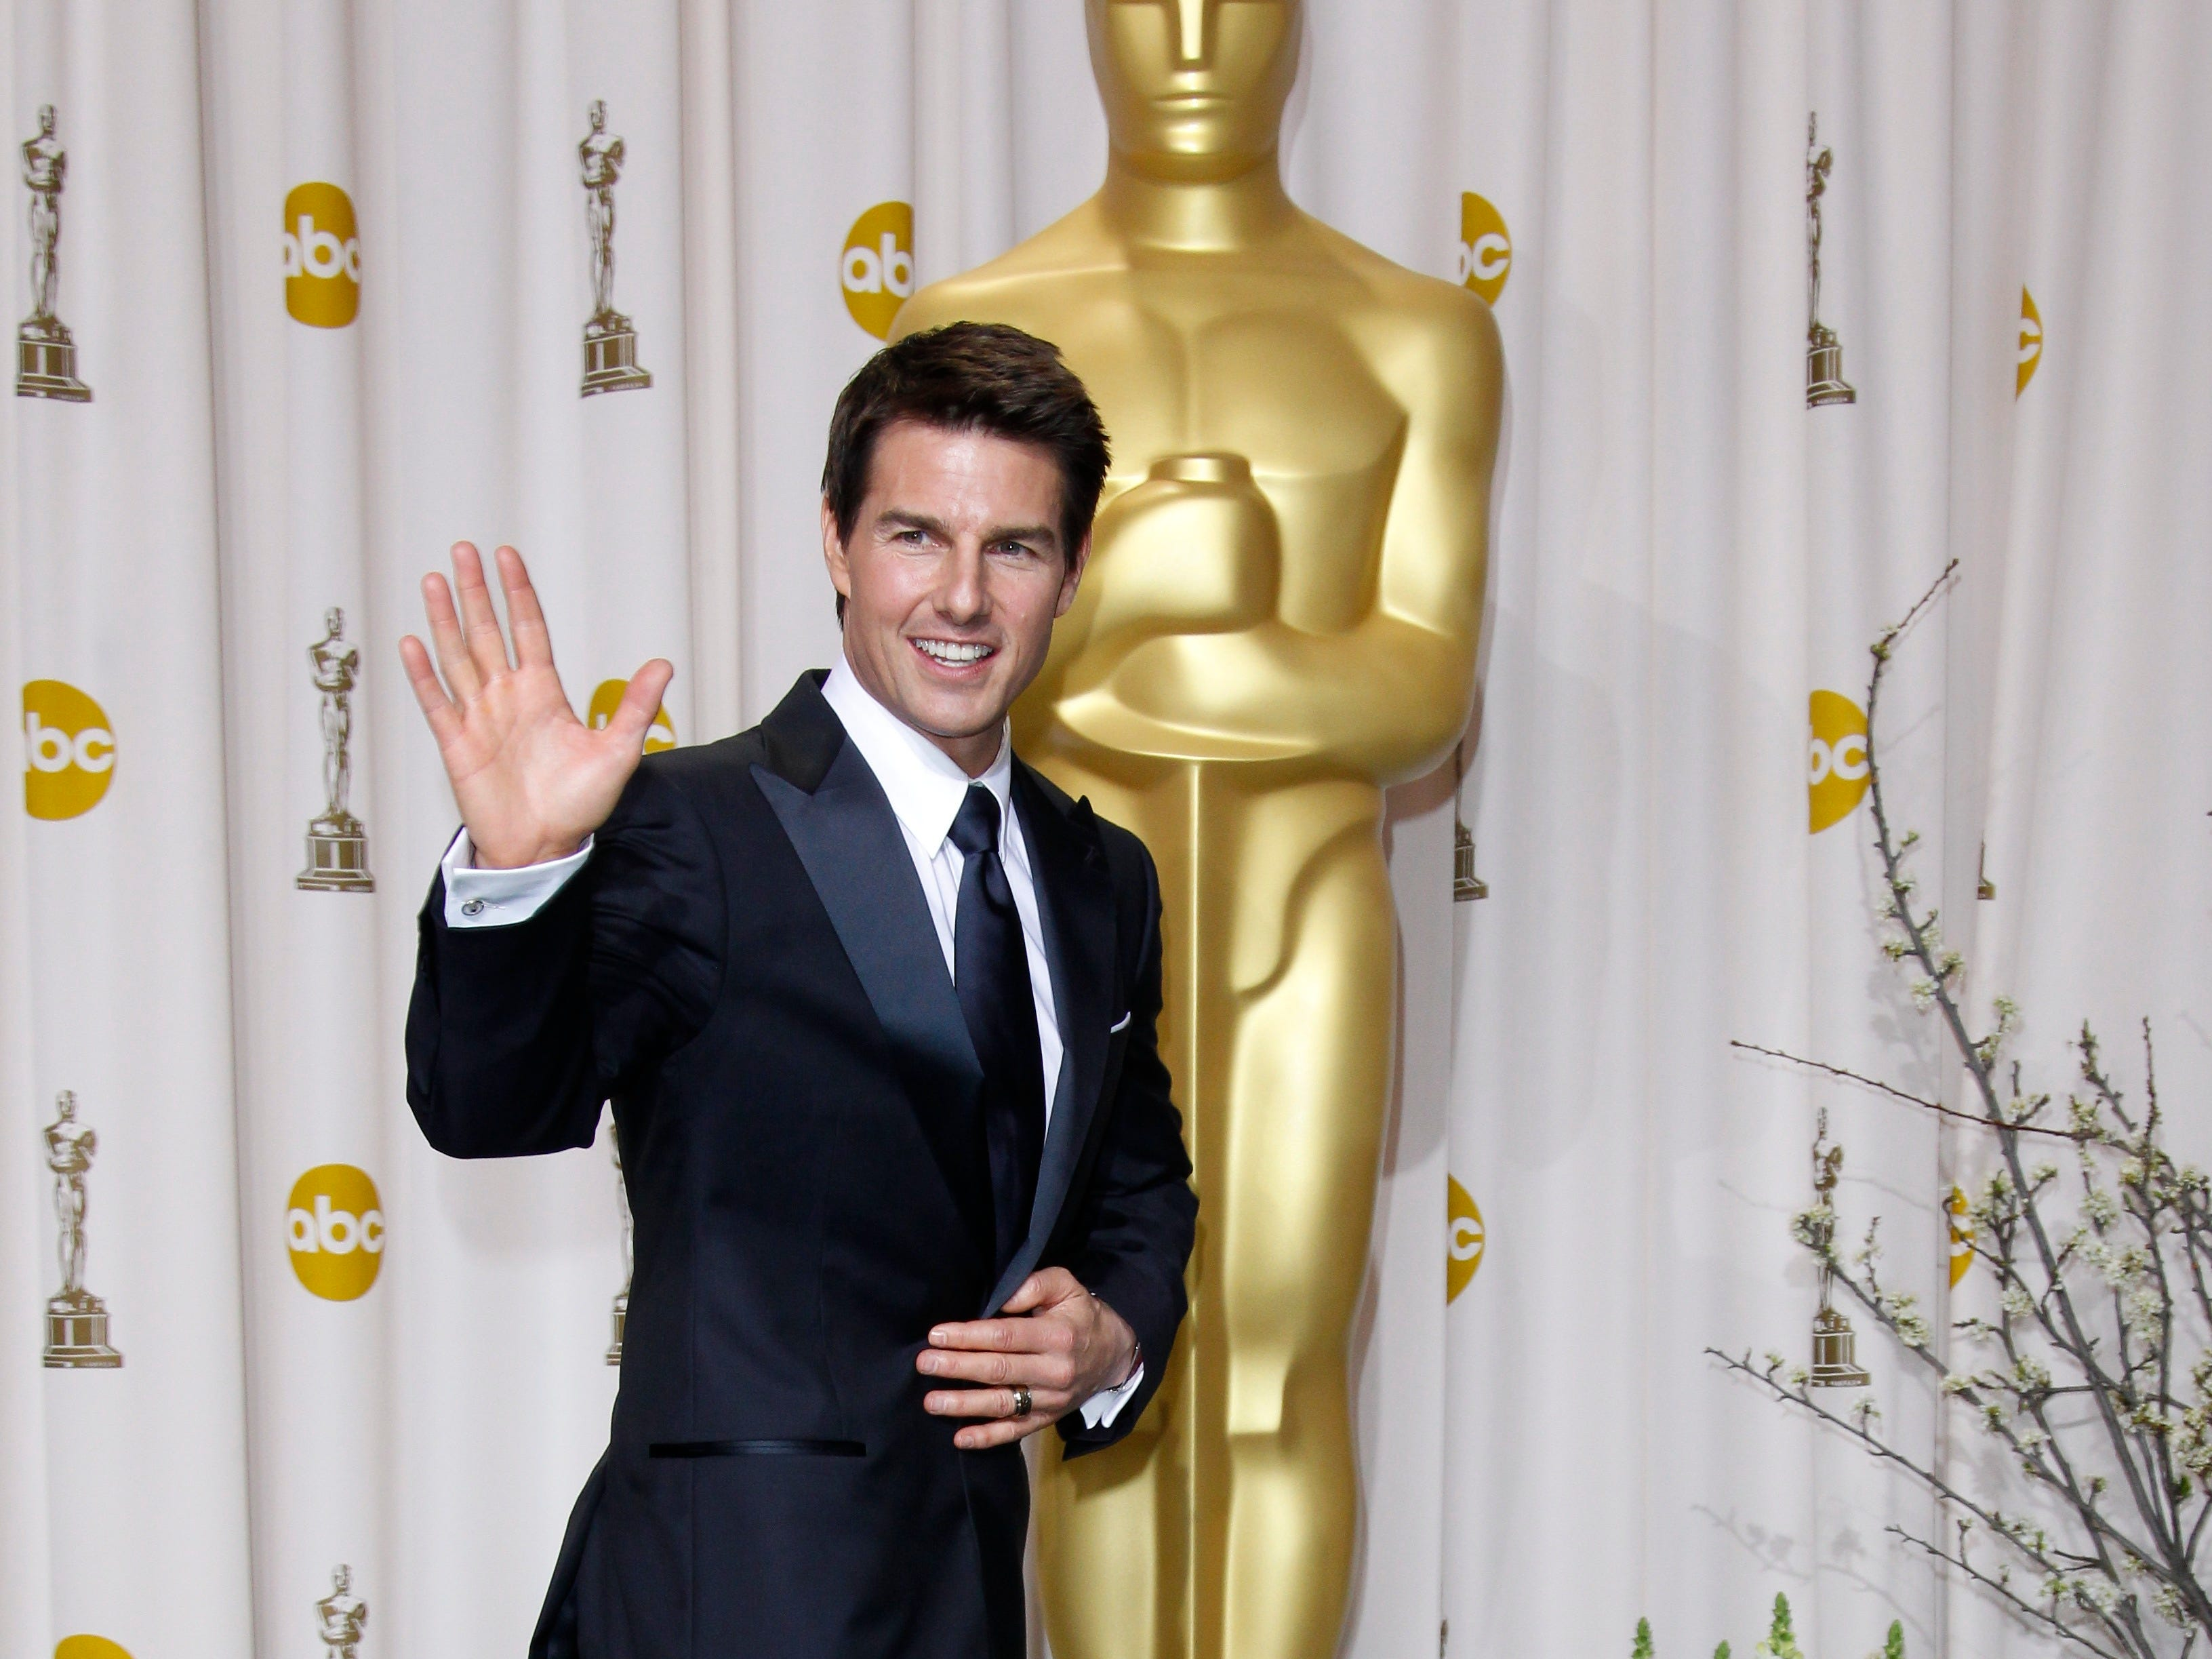 ORG XMIT: DM 41524 ACADEMY AWARDS 2/24/2012  2/26/12 8:55:52 -- Hollywood, CA, U.S.A  --EMBARGOED UNTIL FINAL CREDIT ROLLS AT SHOW'S CLOSE Tom Cruise poses in the photo room at the 84th annual Academy Awards at the Hollywood & Highland Center. --    Photo by Dan MacMedan, USA TODAY contract photographer   [Via MerlinFTP Drop]